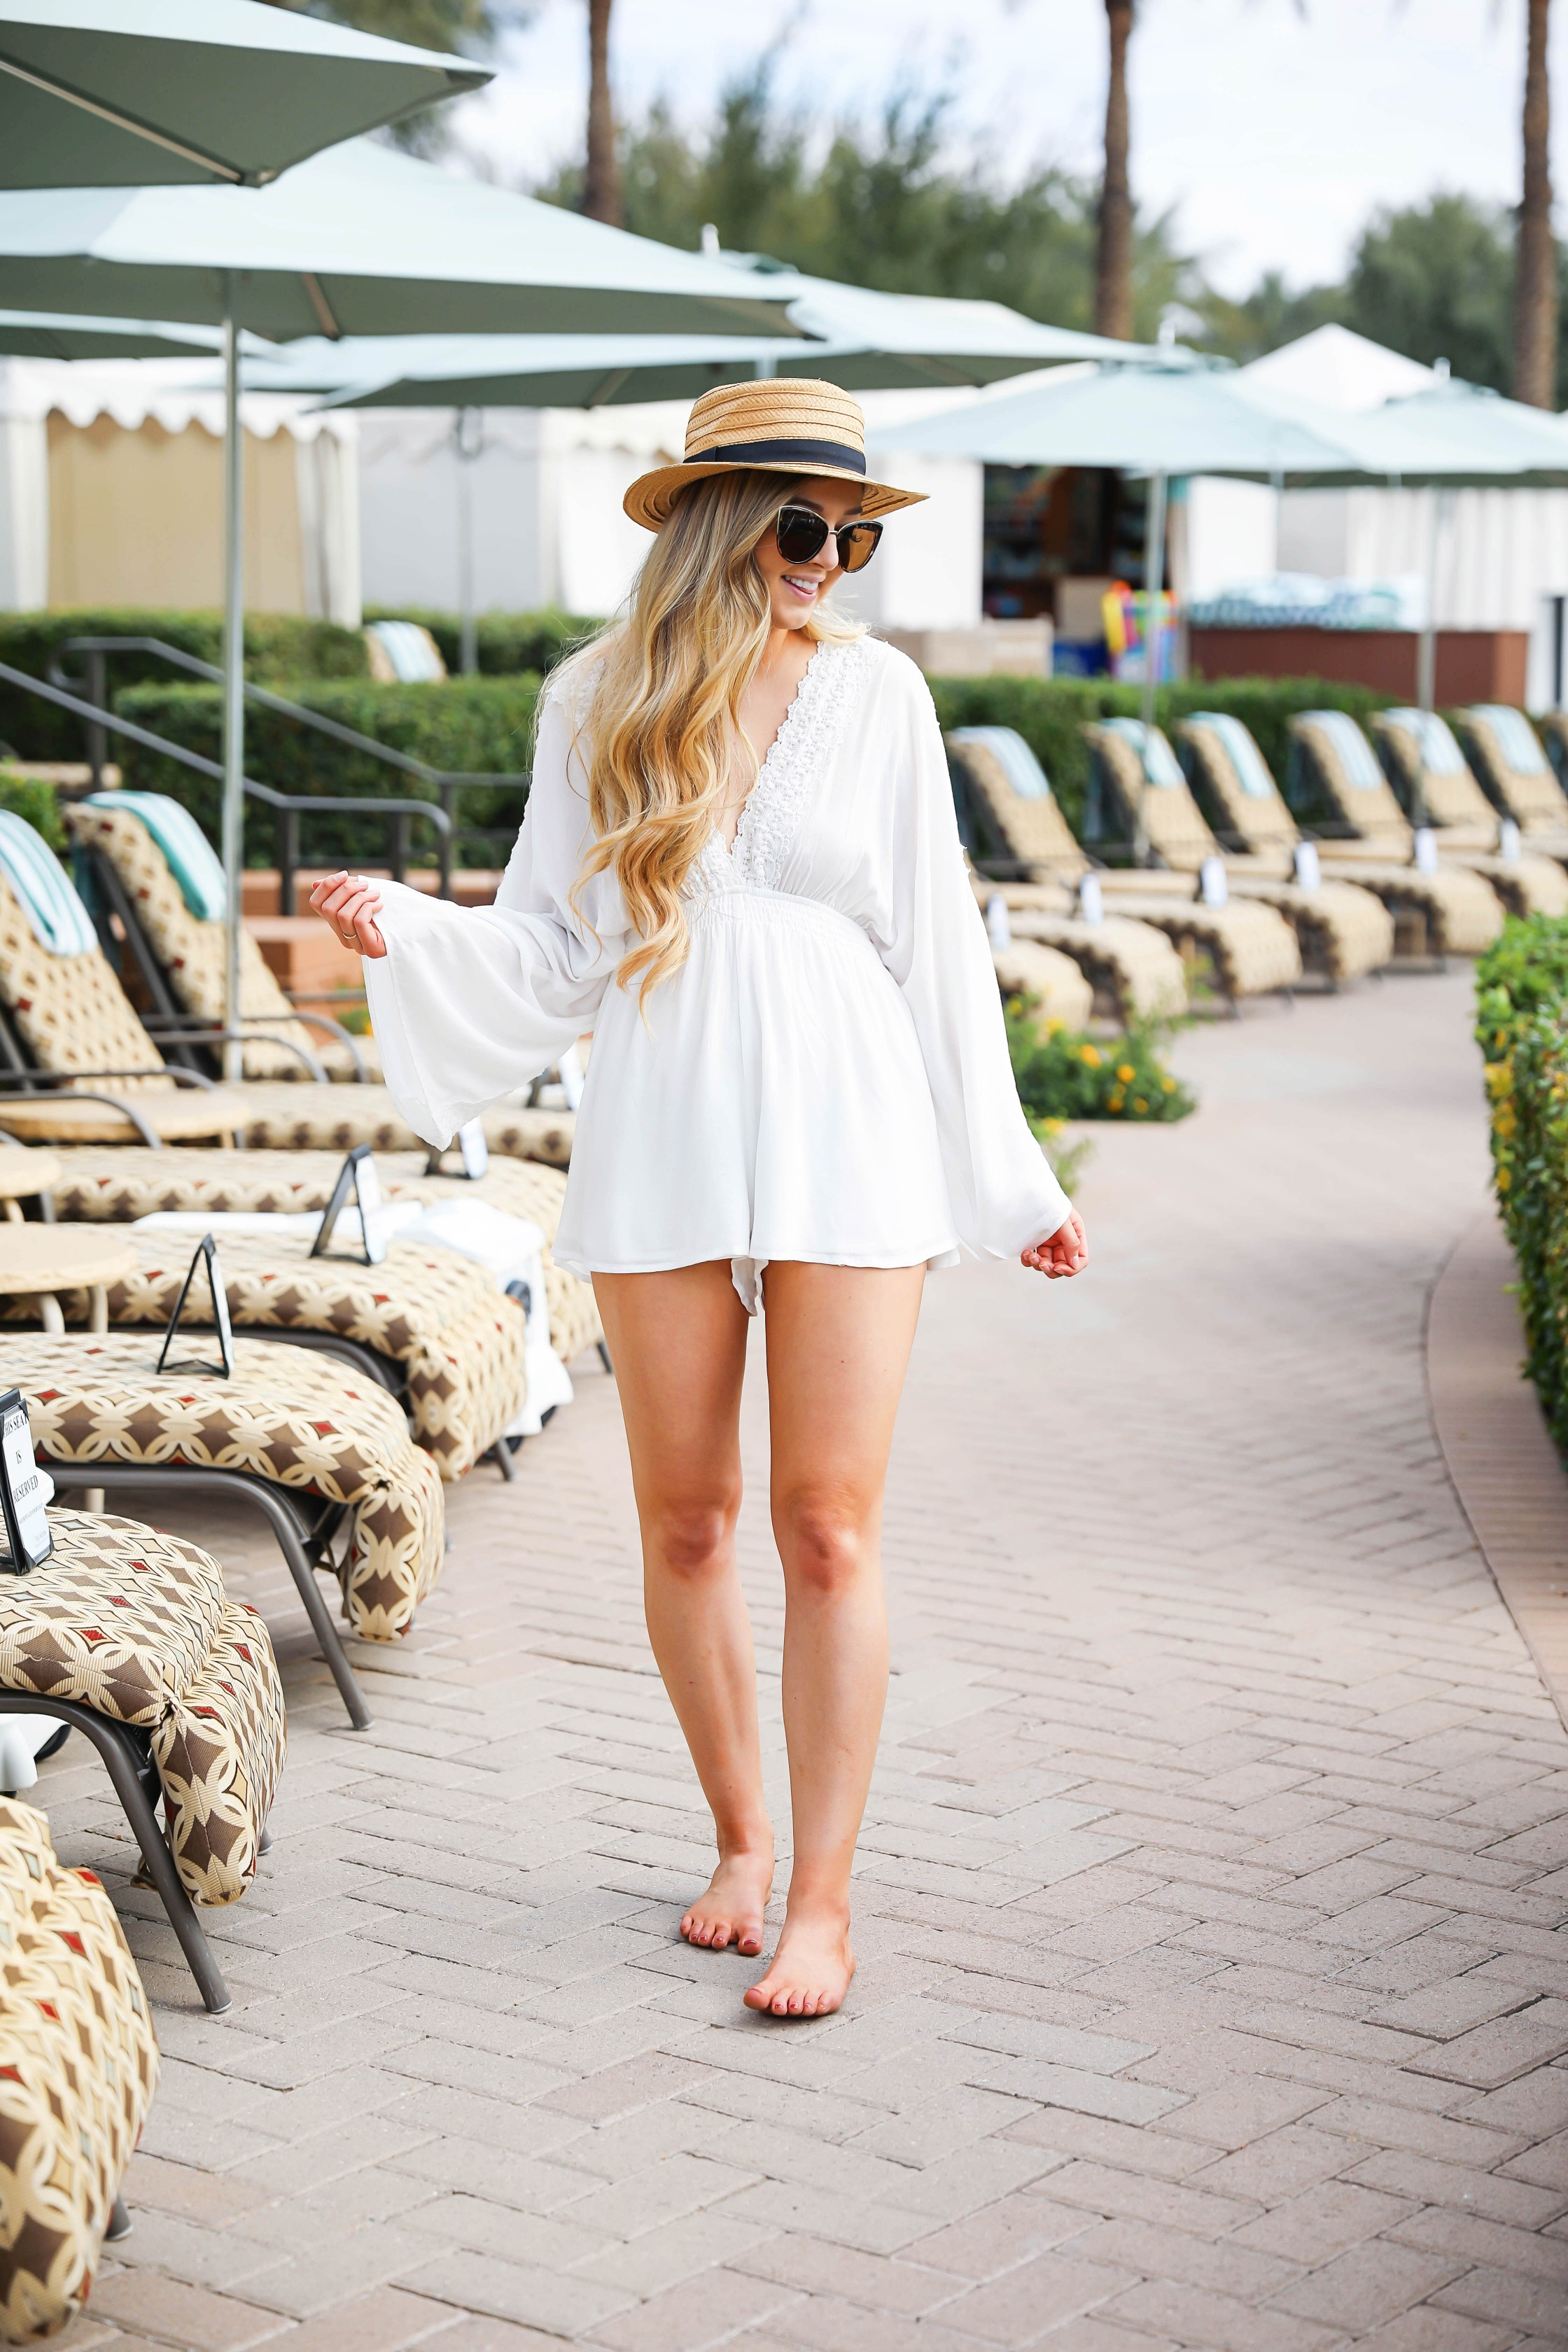 White pool cover up perfect for spring break! This cute white romper from showpo is so cute and so summery and the cutest outfit for the beach! Details on fashion blog daily dose of charm by lauren lindmark